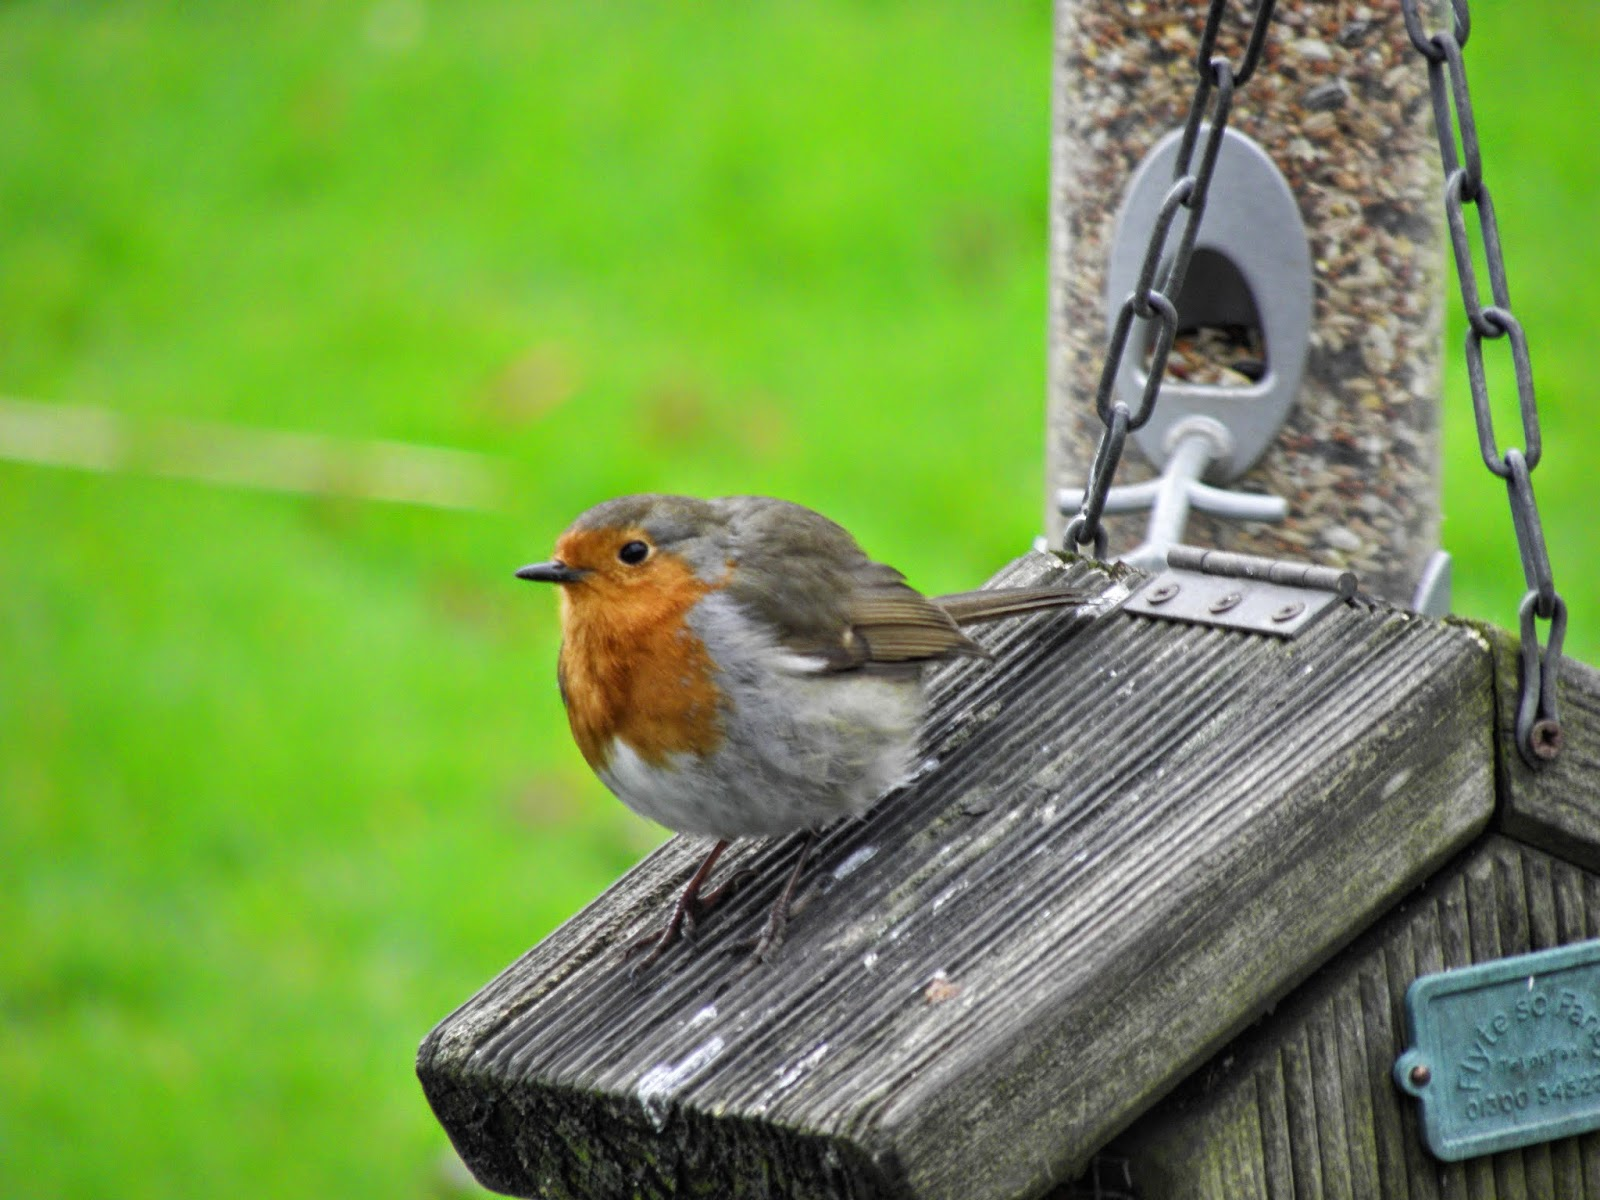 Robin enjoying some seed